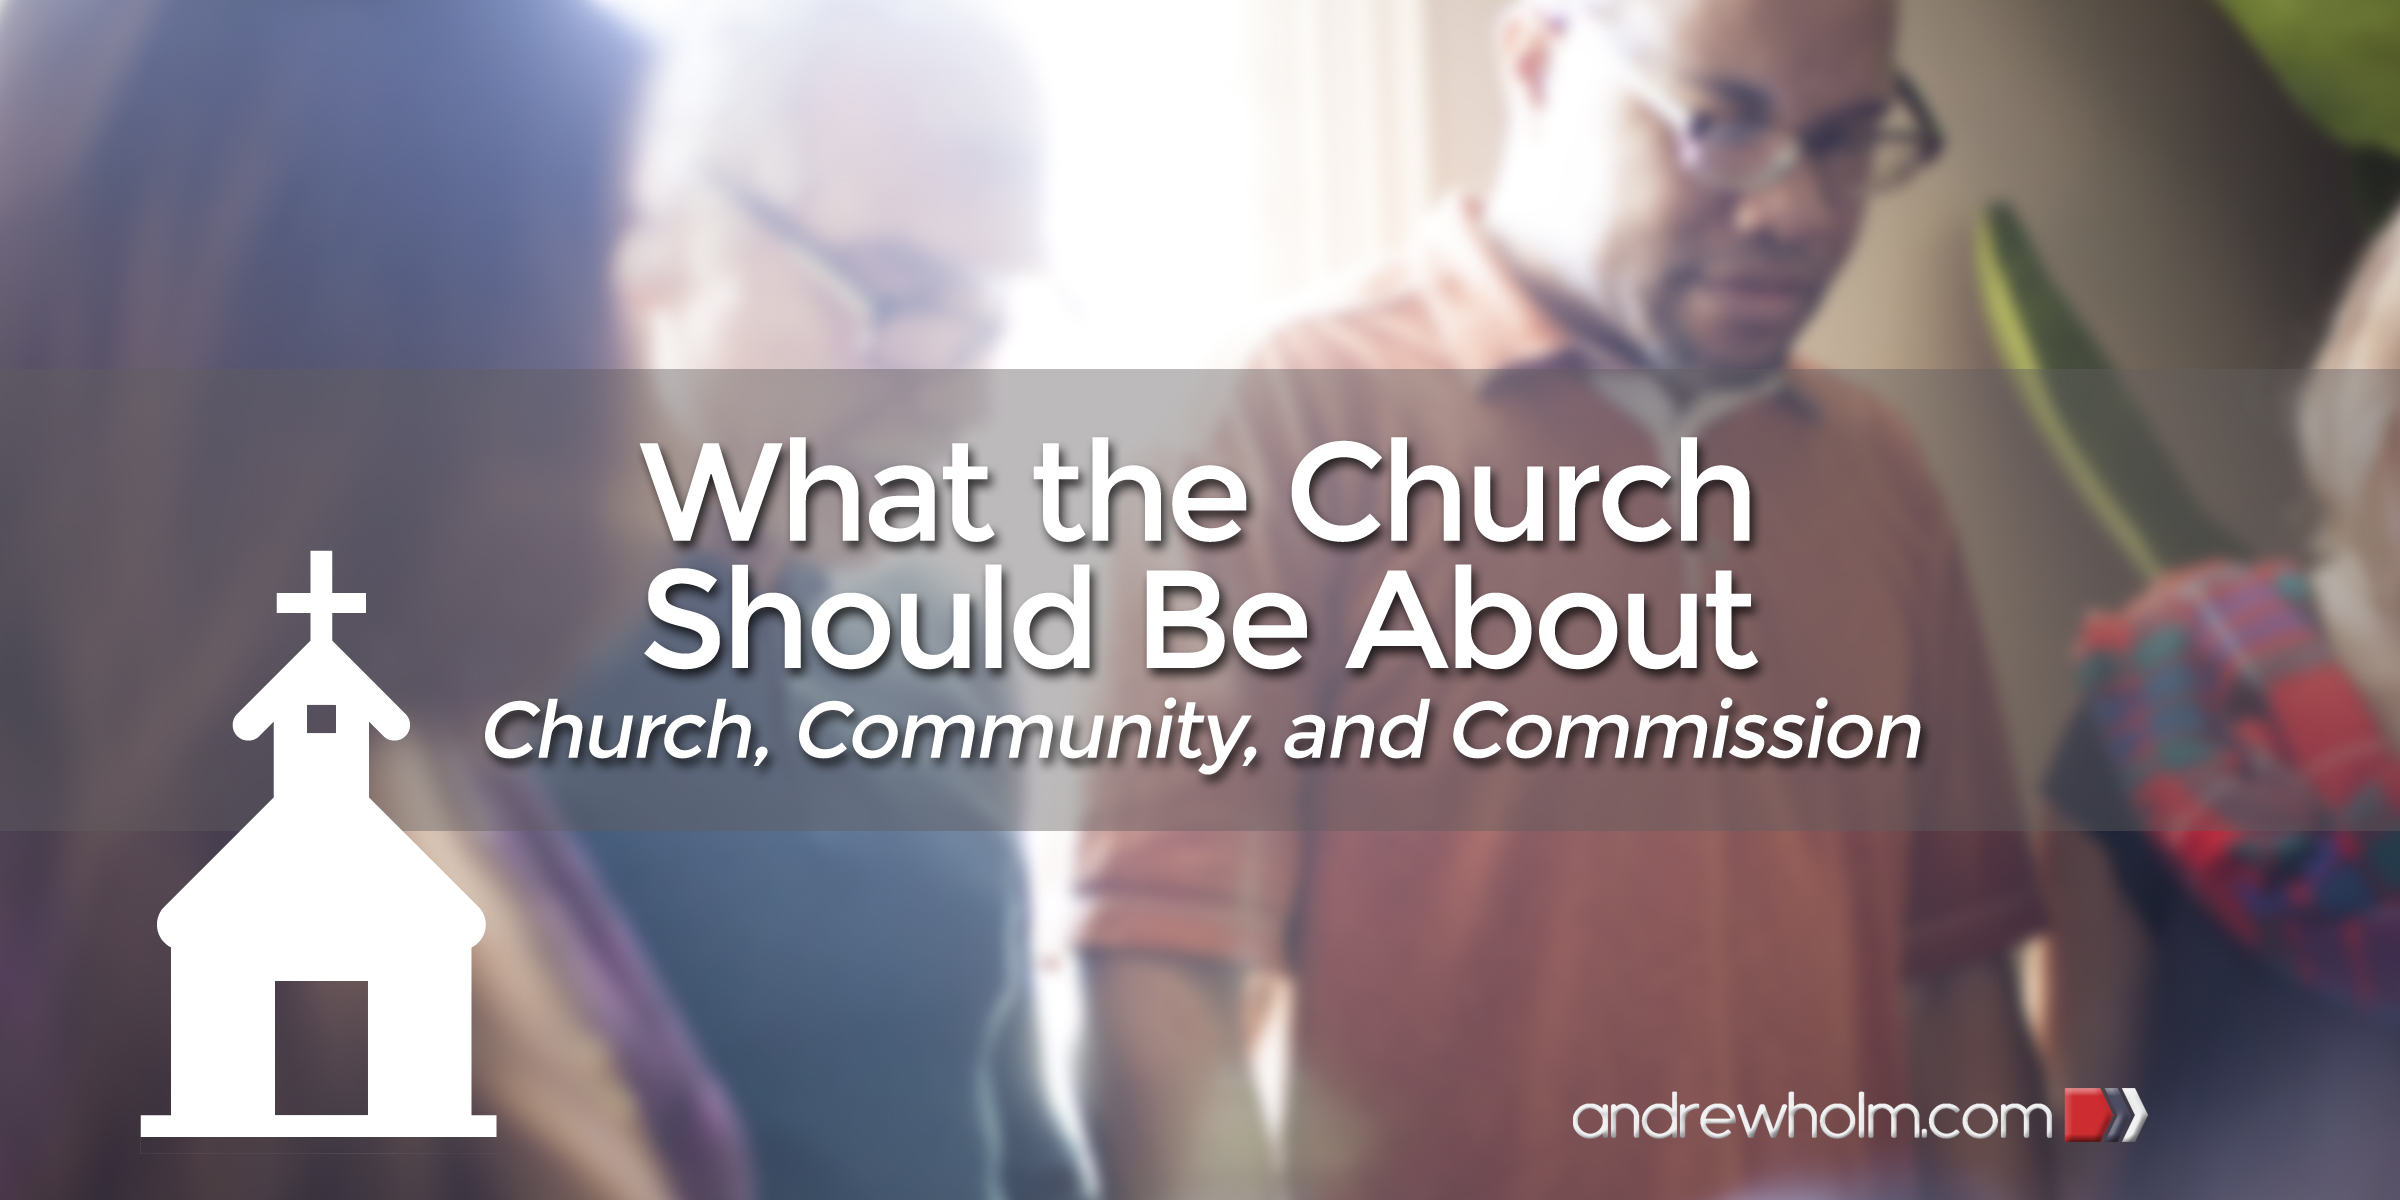 What the Church Should Be About